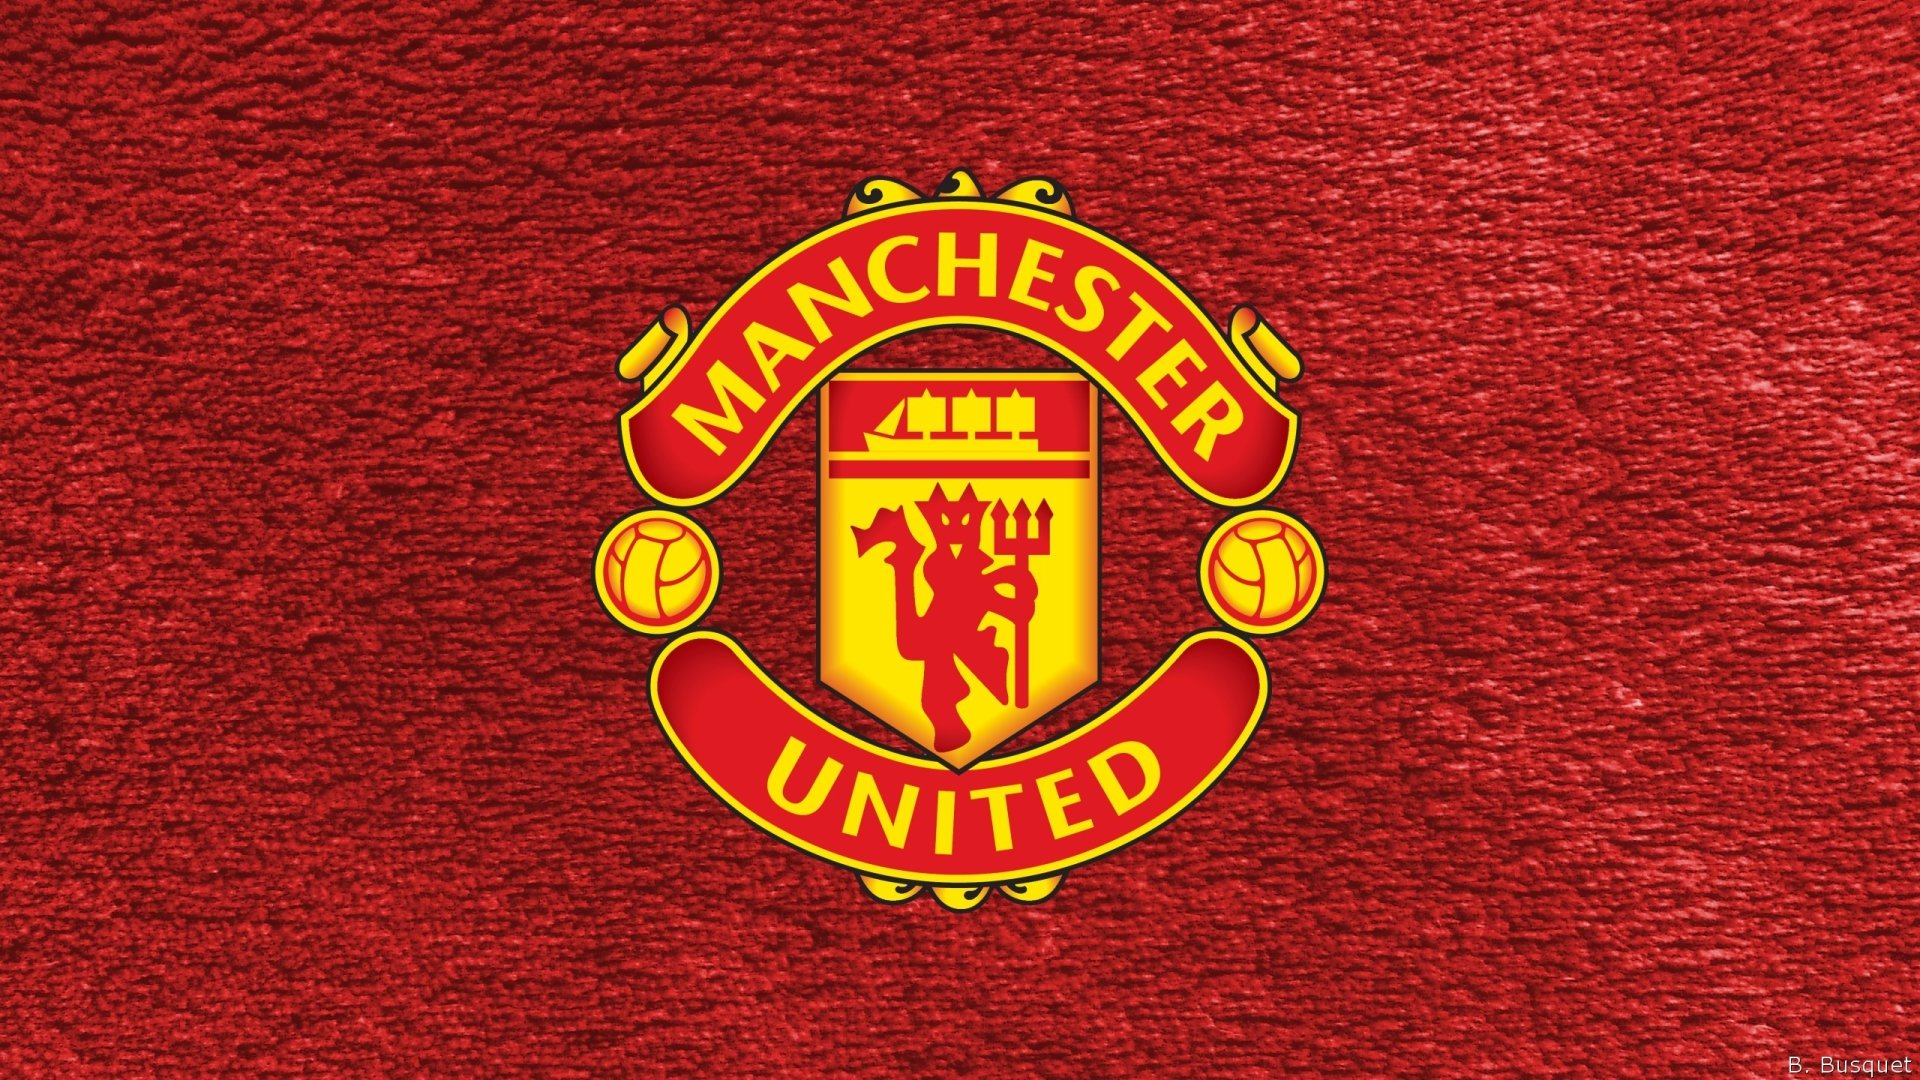 Manchester United F.C. HD Wallpaper | Background Image | 2560x1440 | ID:989299 - Wallpaper Abyss